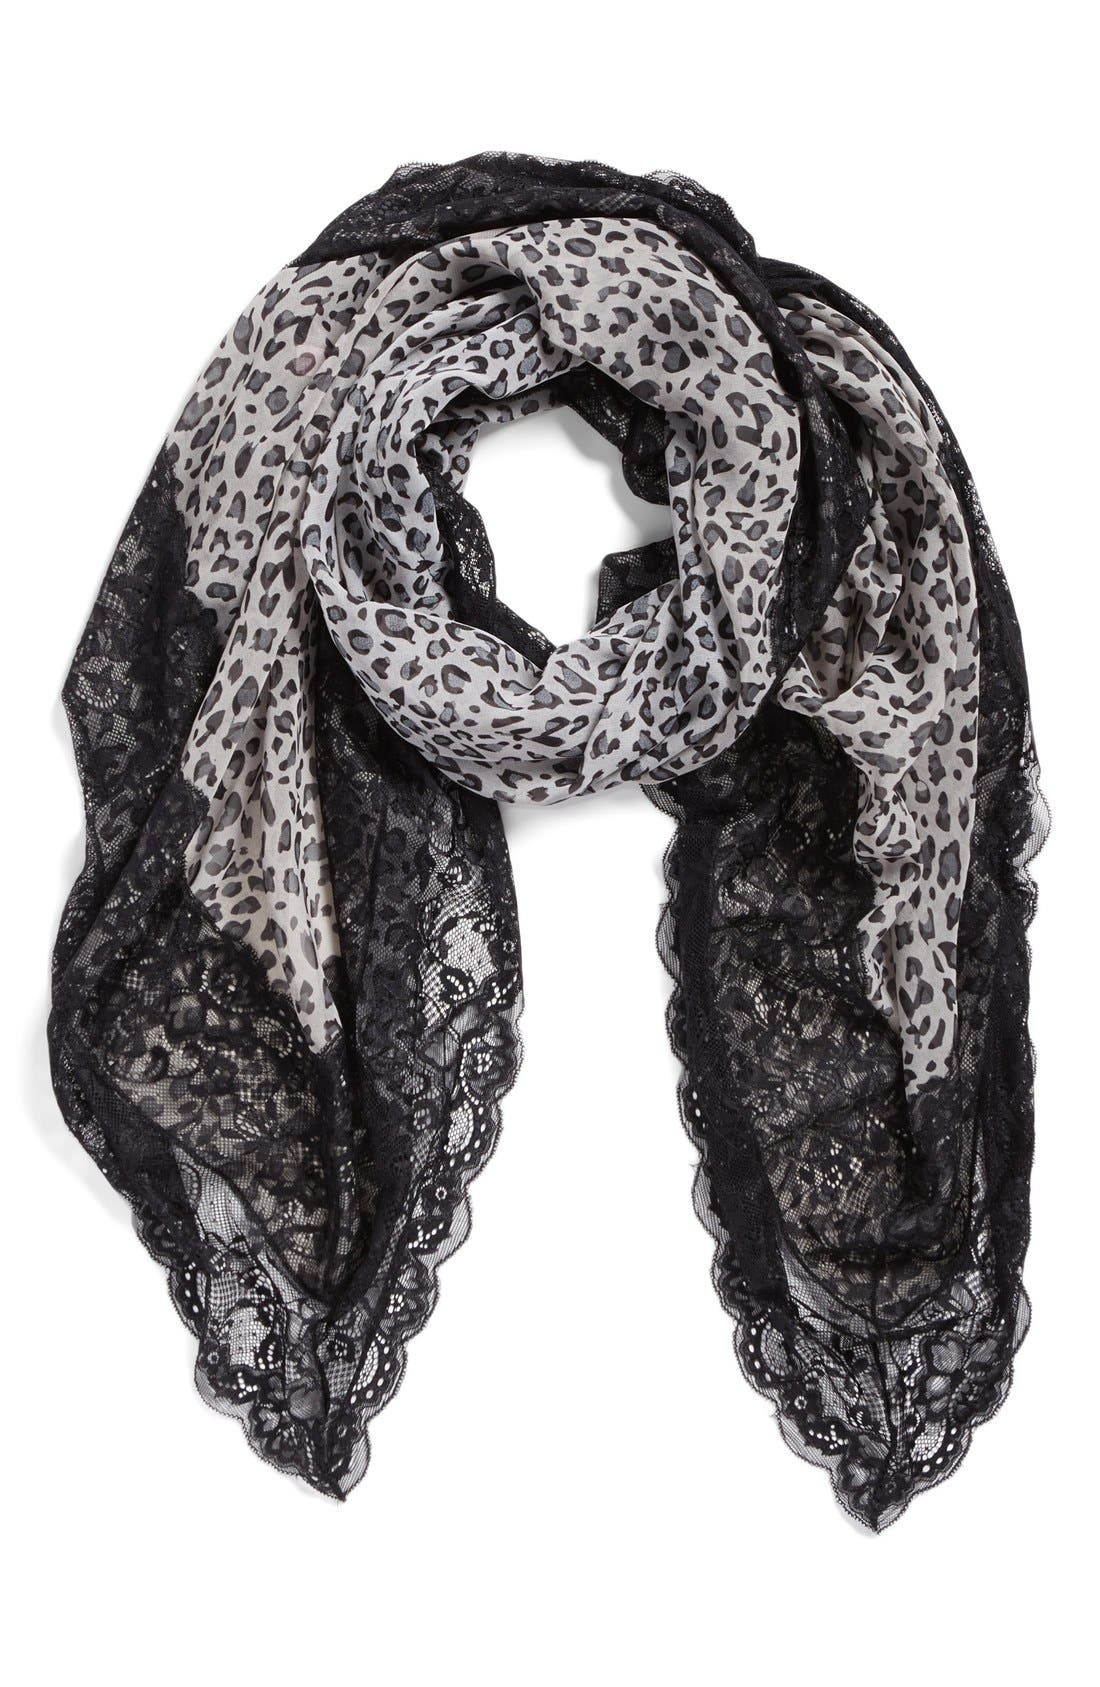 Alternate Image 1 Selected - La Fiorentina Animal Print Scarf